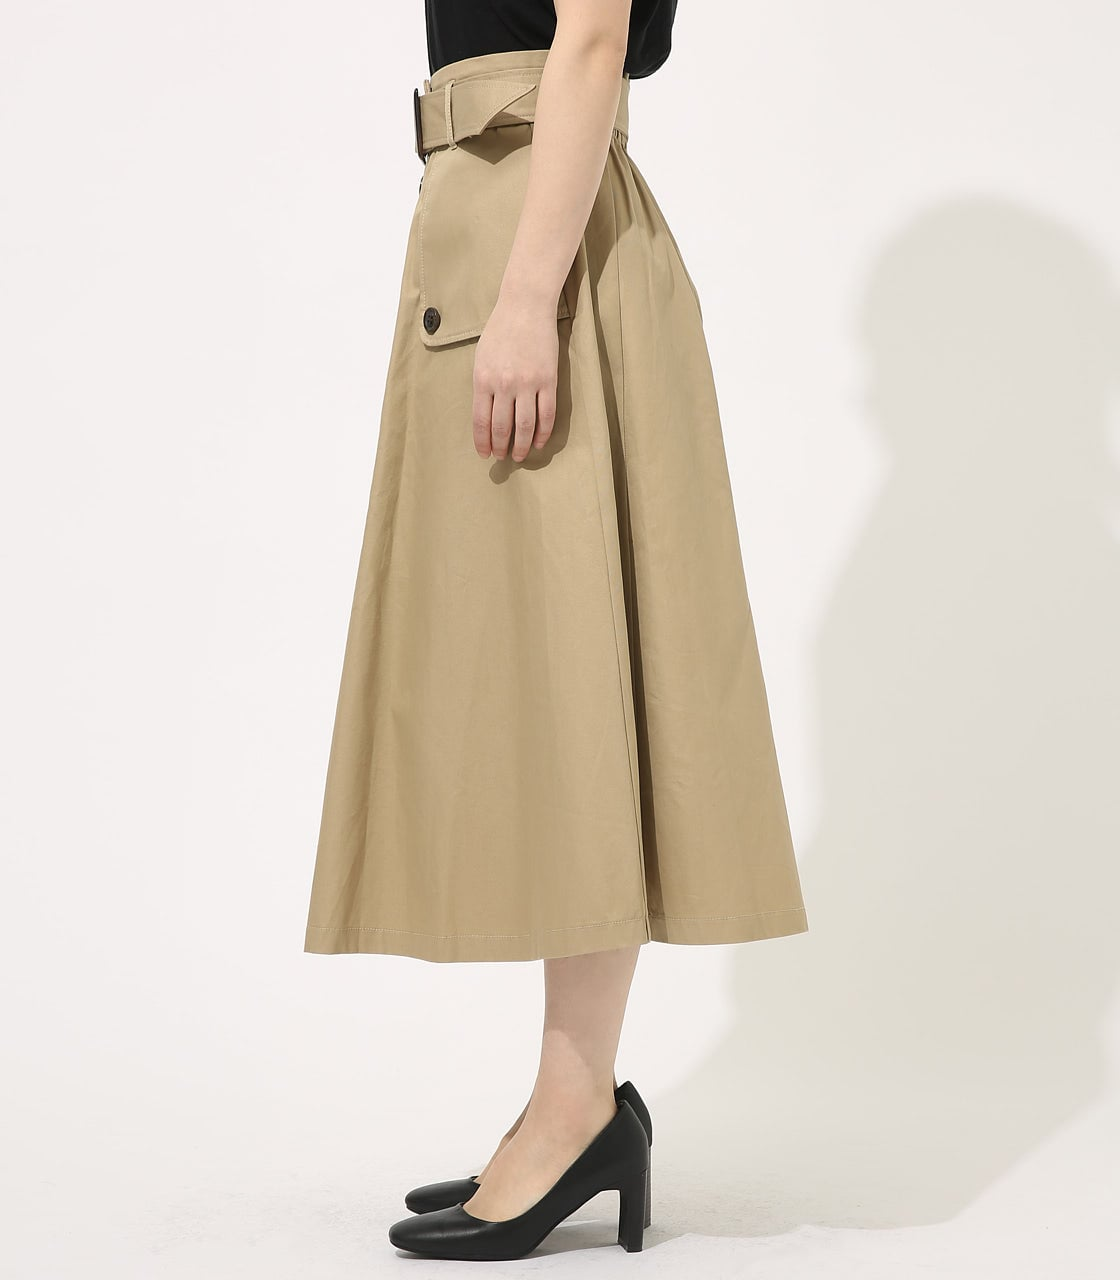 【AZUL BY MOUSSY】TRENCH FLARE SKIRT 詳細画像 BEG 5